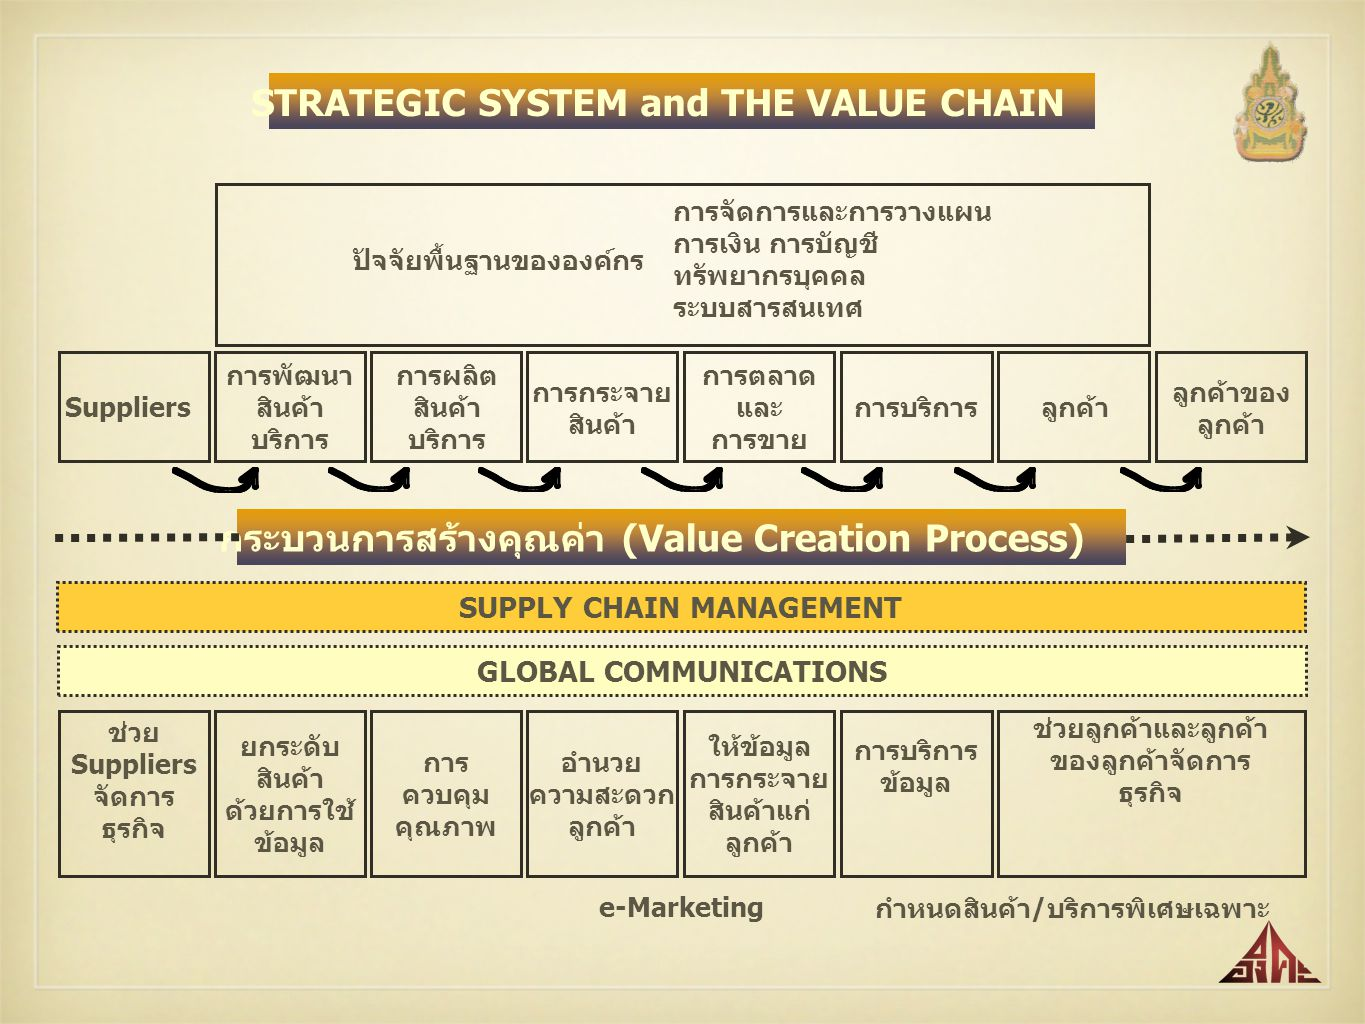 STRATEGIC SYSTEM and THE VALUE CHAIN